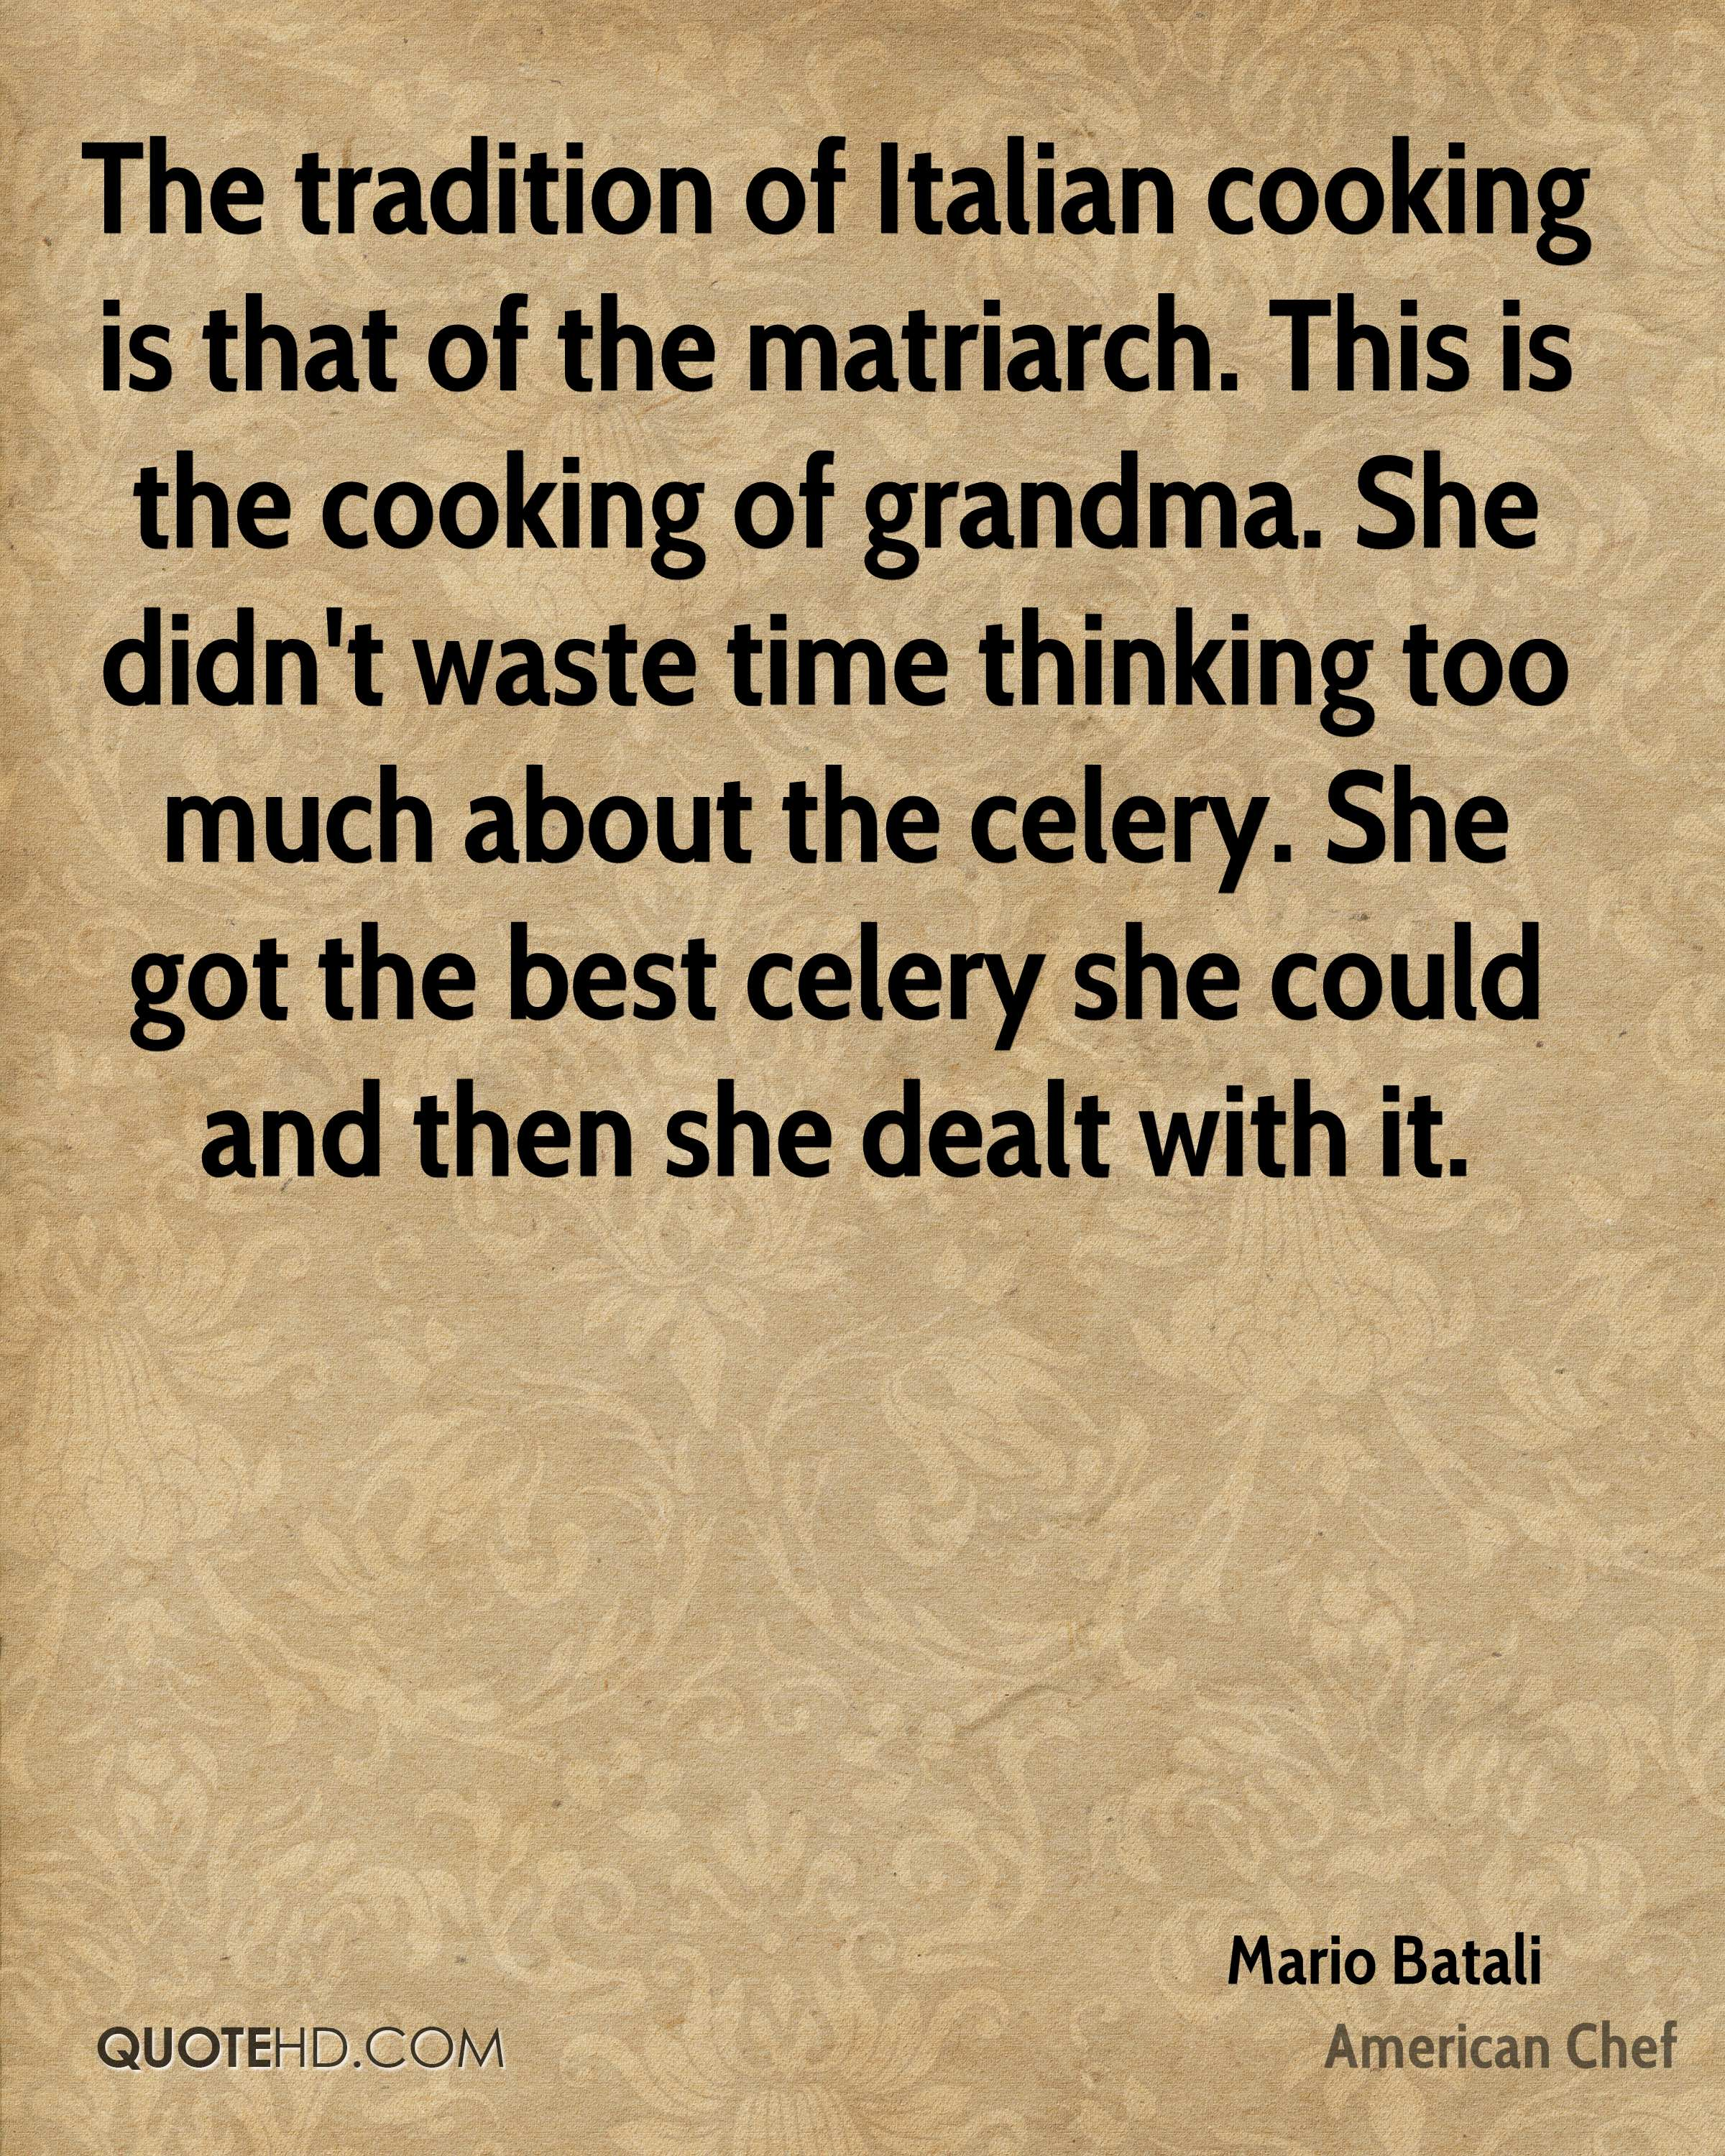 The tradition of Italian cooking is that of the matriarch. This is the cooking of grandma. She didn't waste time thinking too much about the celery. She got the best celery she could and then she dealt with it.